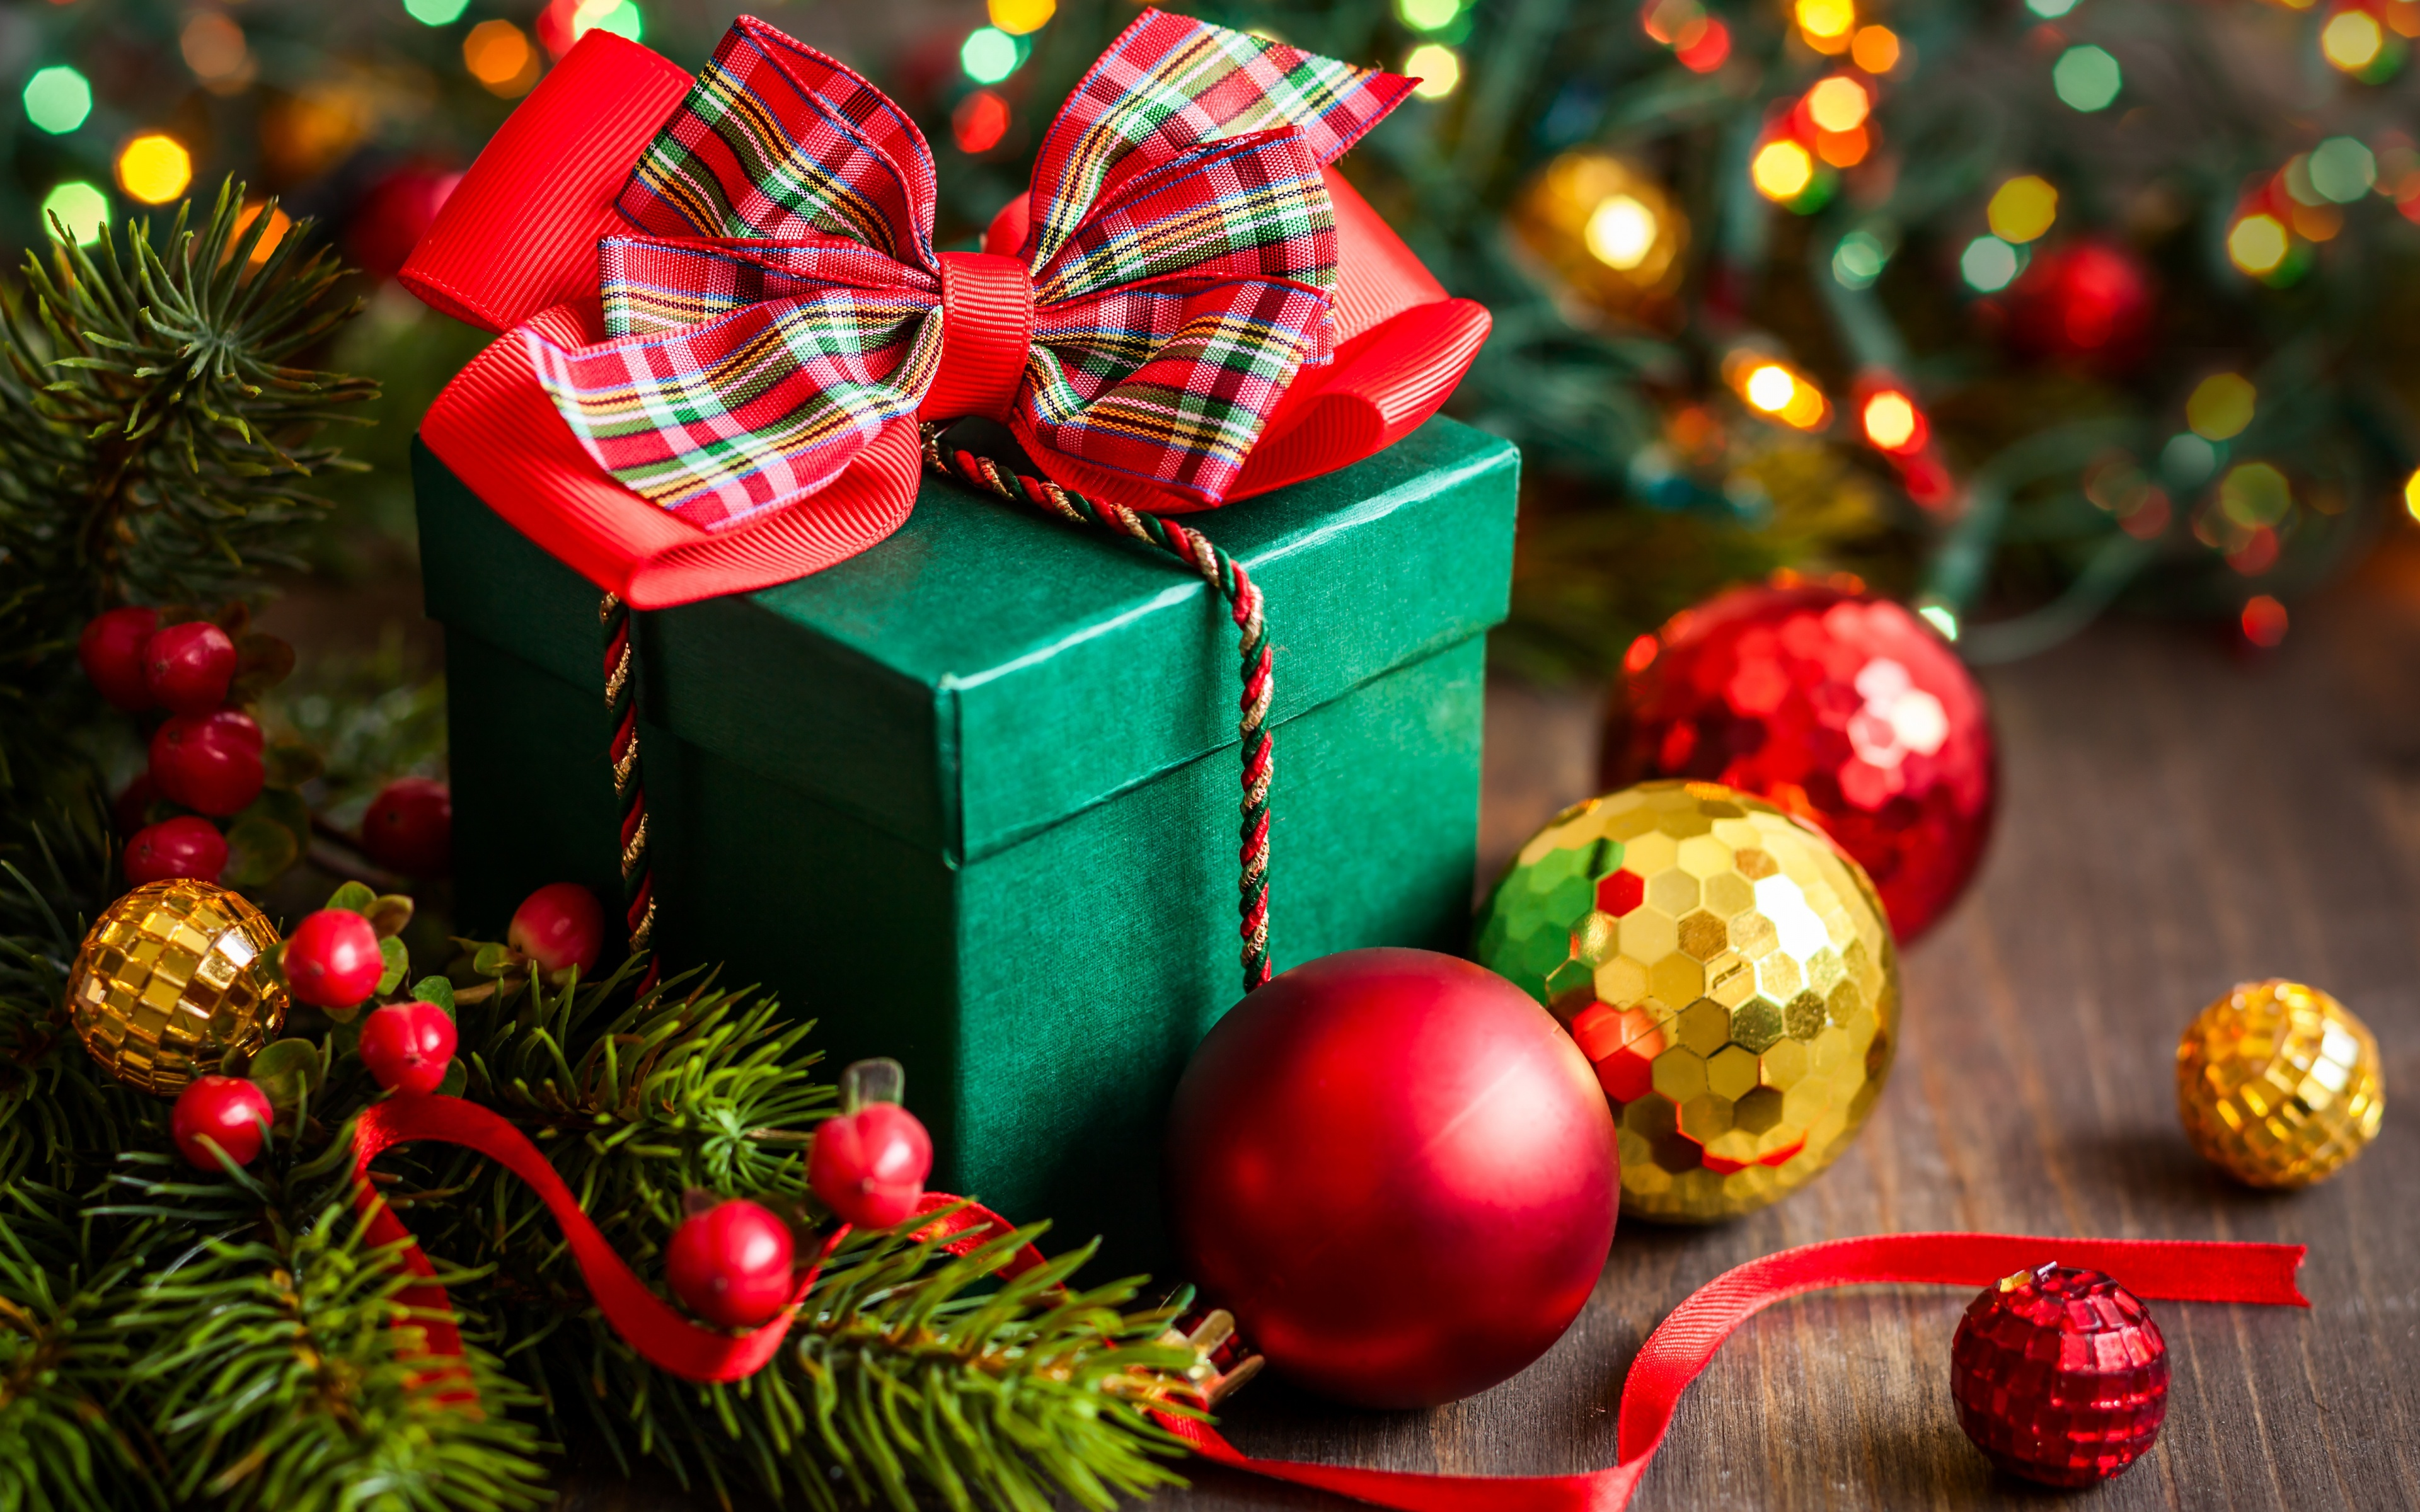 Merry Christmas Gift Box Wallpapers - 3840x2400 - 2316052